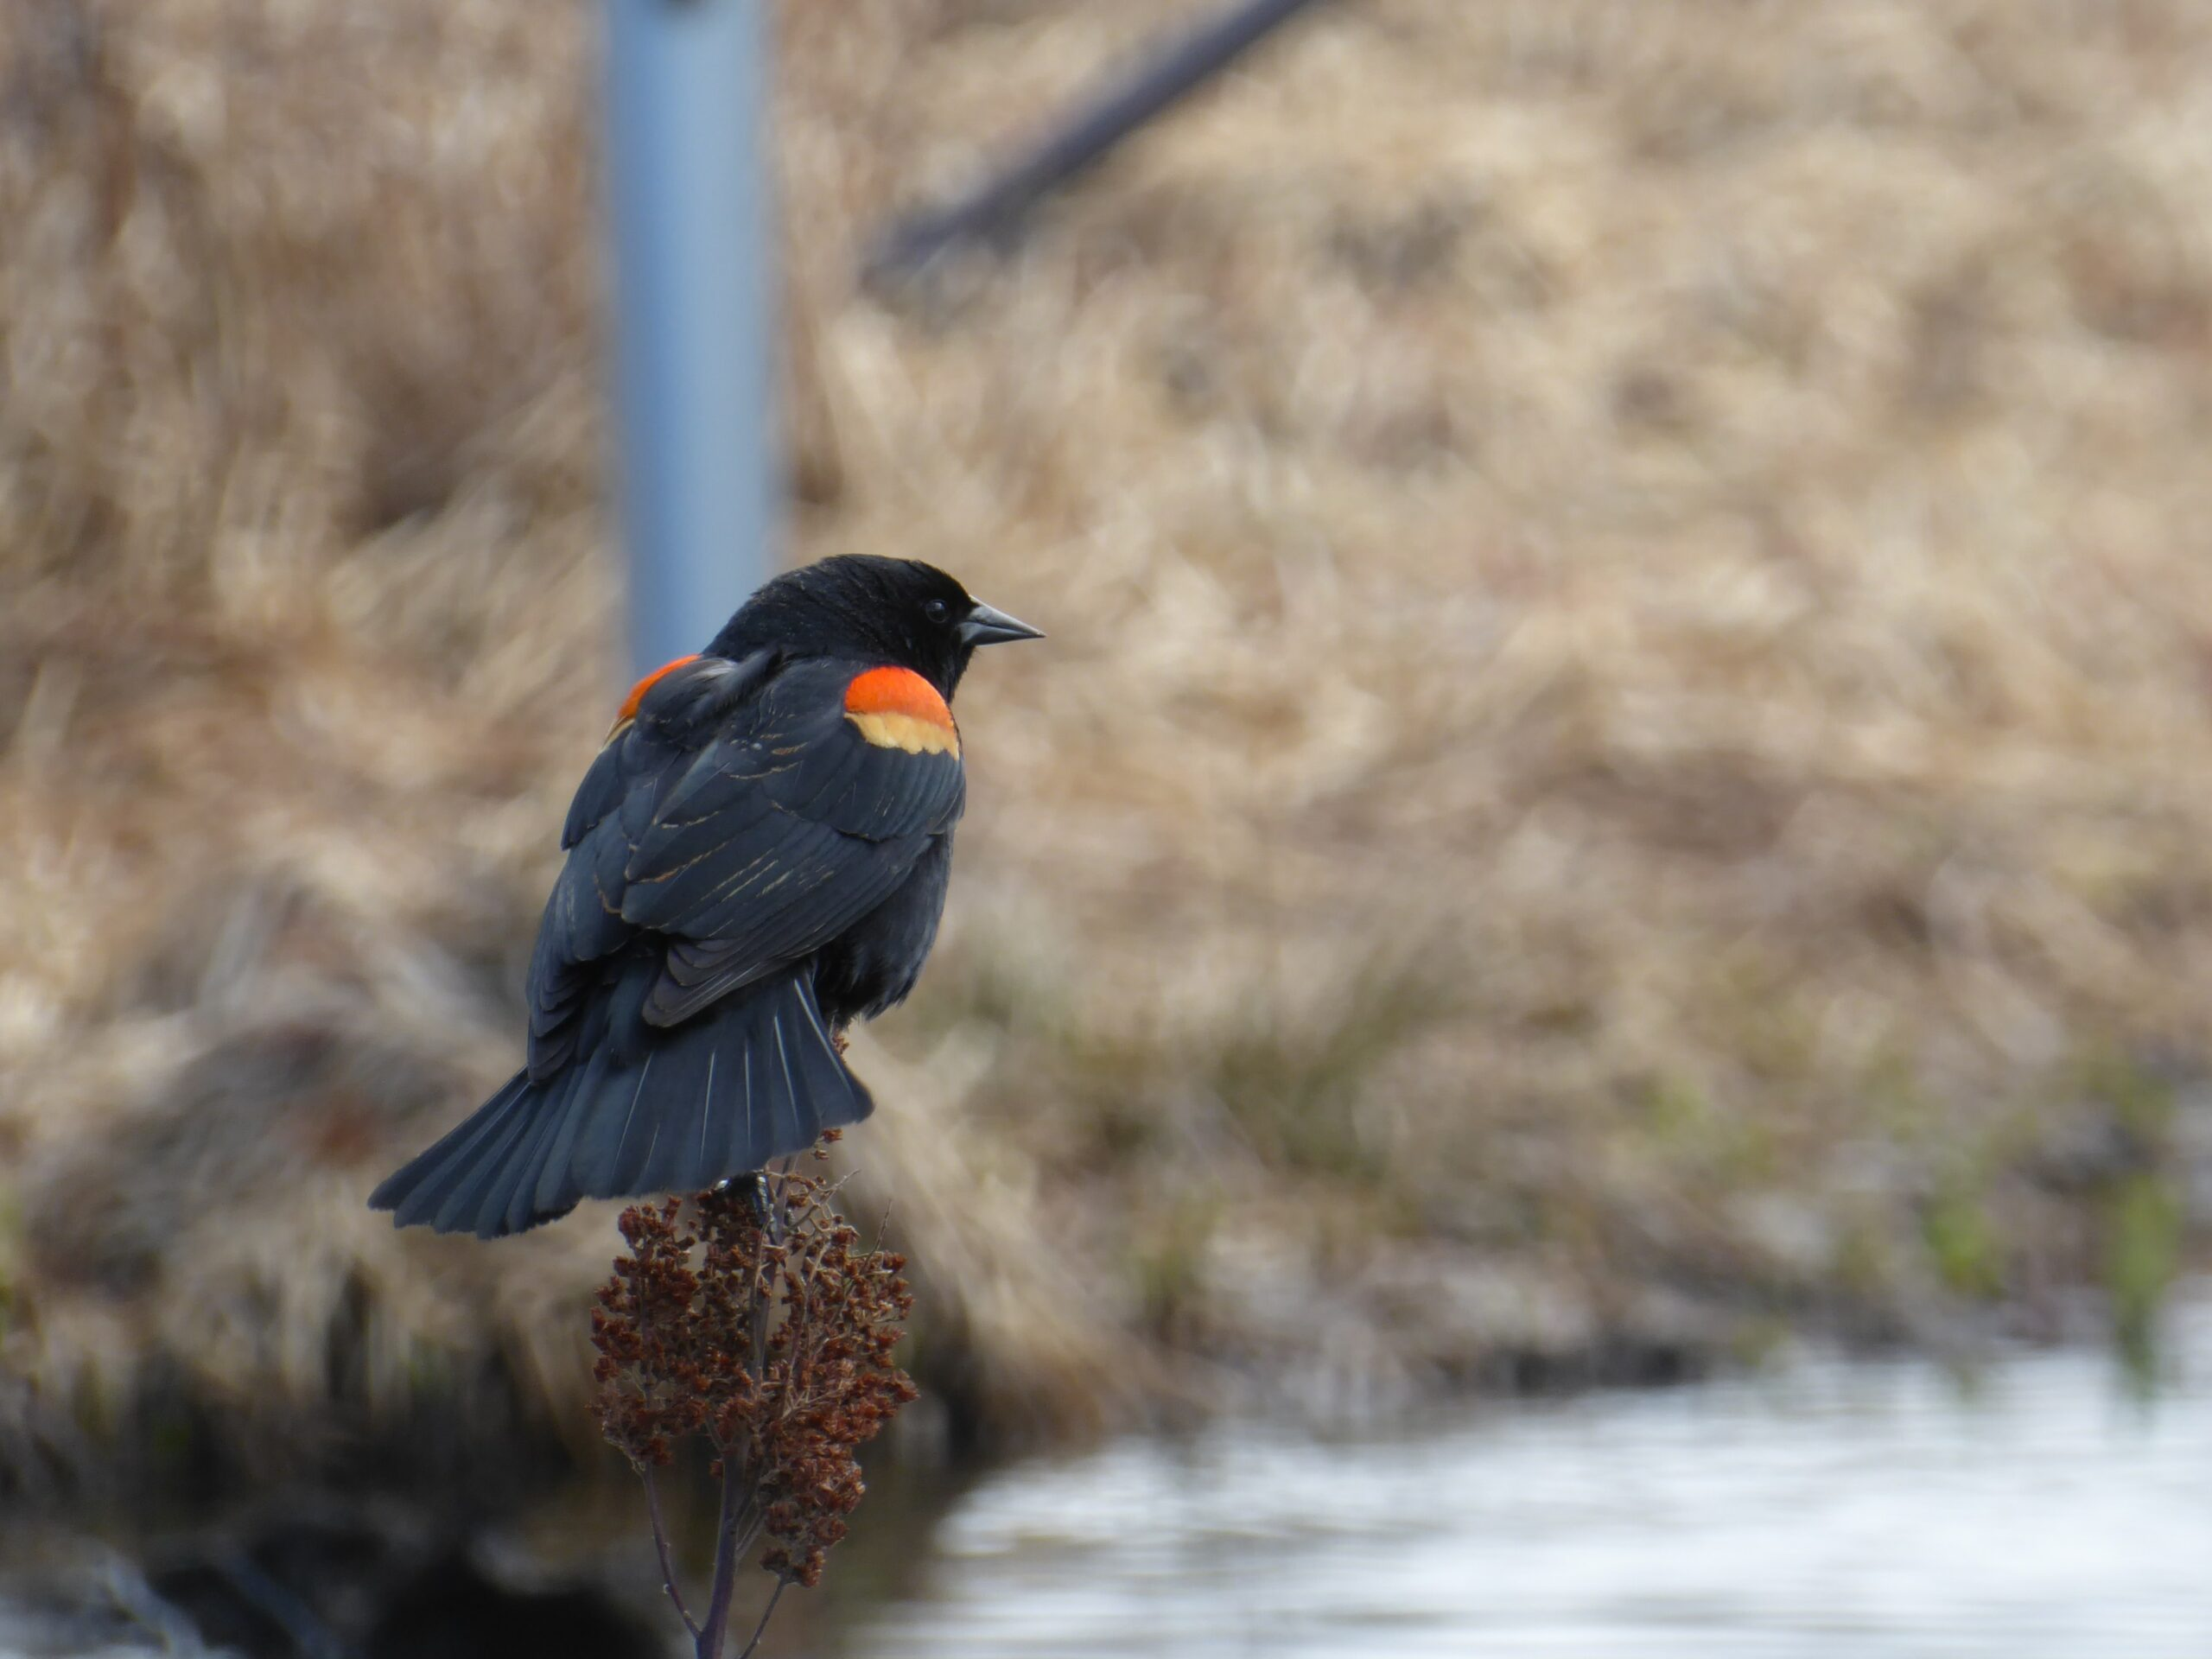 We've lost almost 3 billion birds in the U.S. and Canada since 1970